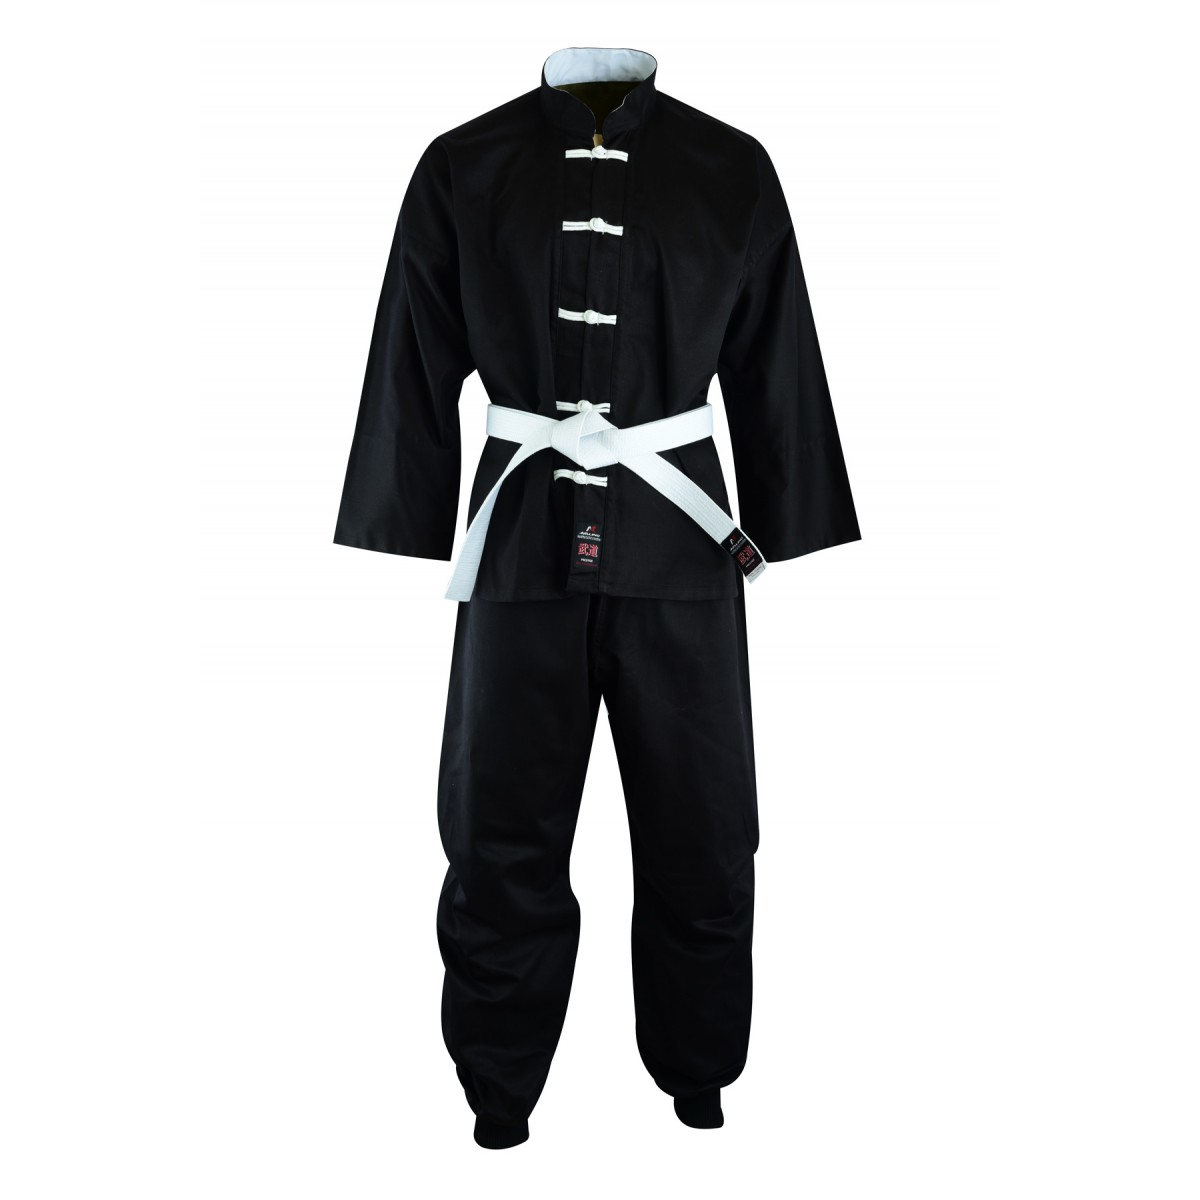 Malino Adult Kung Fu Suit Cotton Black/White - 8oz